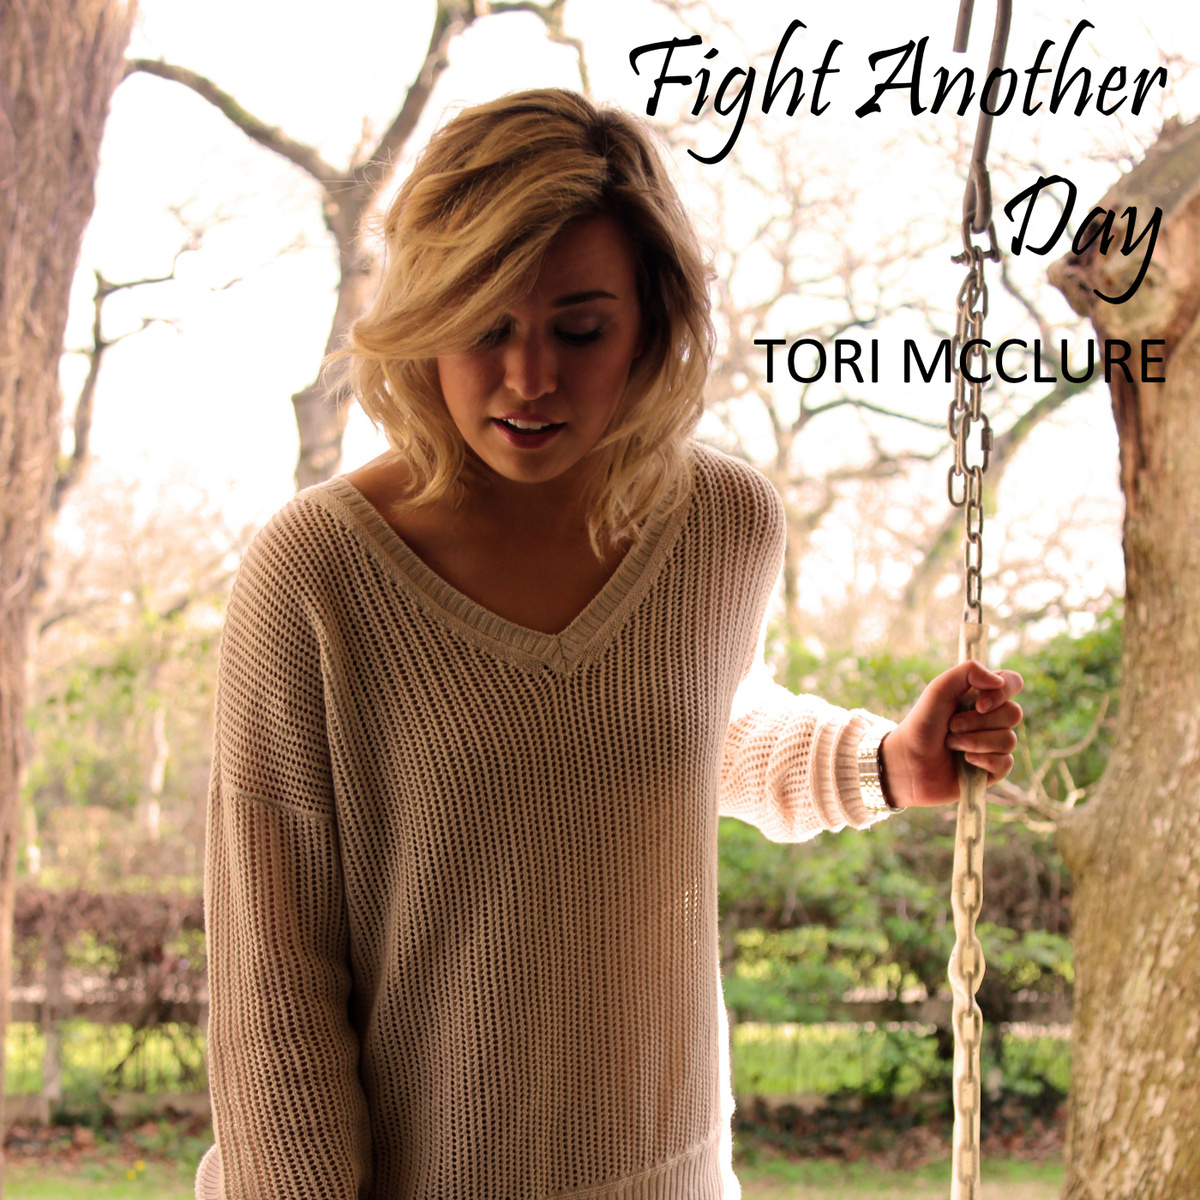 Fight Another Day - Single (2014)